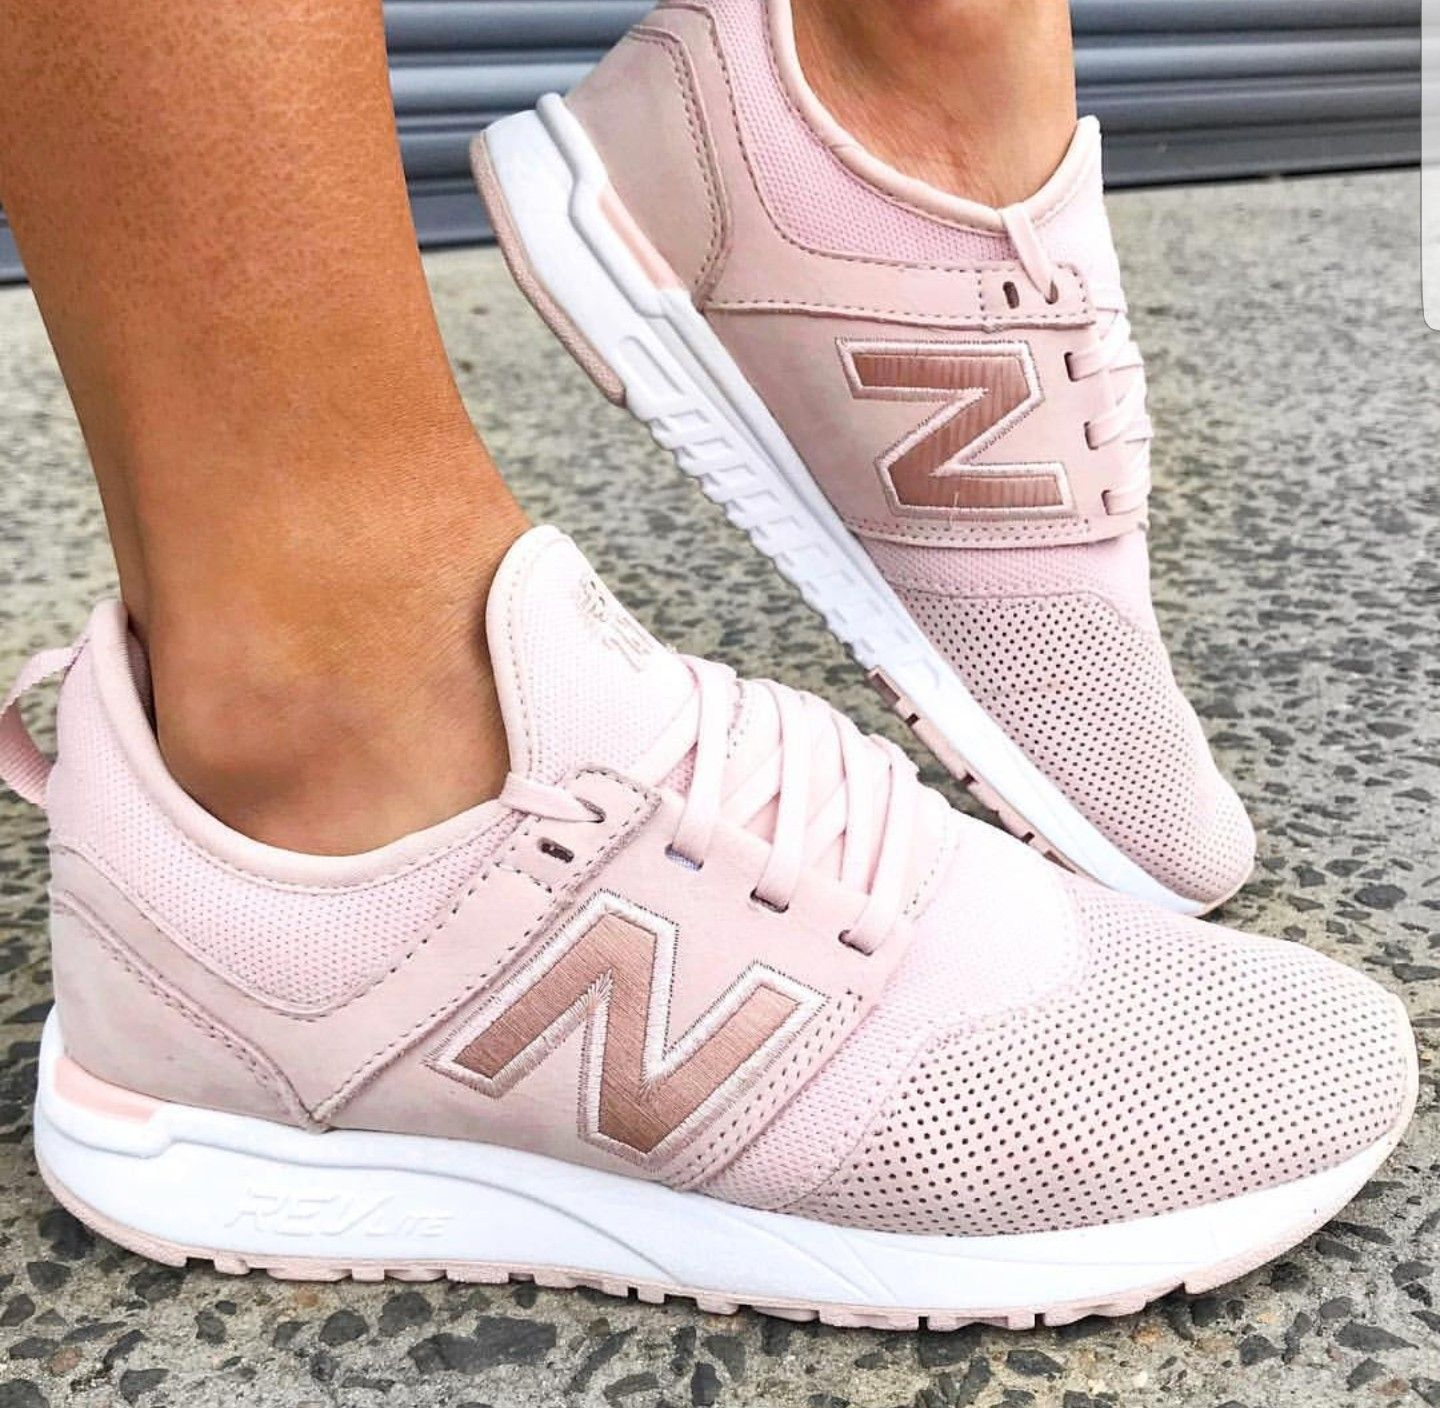 362fa0188c9de New Balance 247 in Pink Sandstone #sneakerlove #sneakers #trainers #fitness  #gym